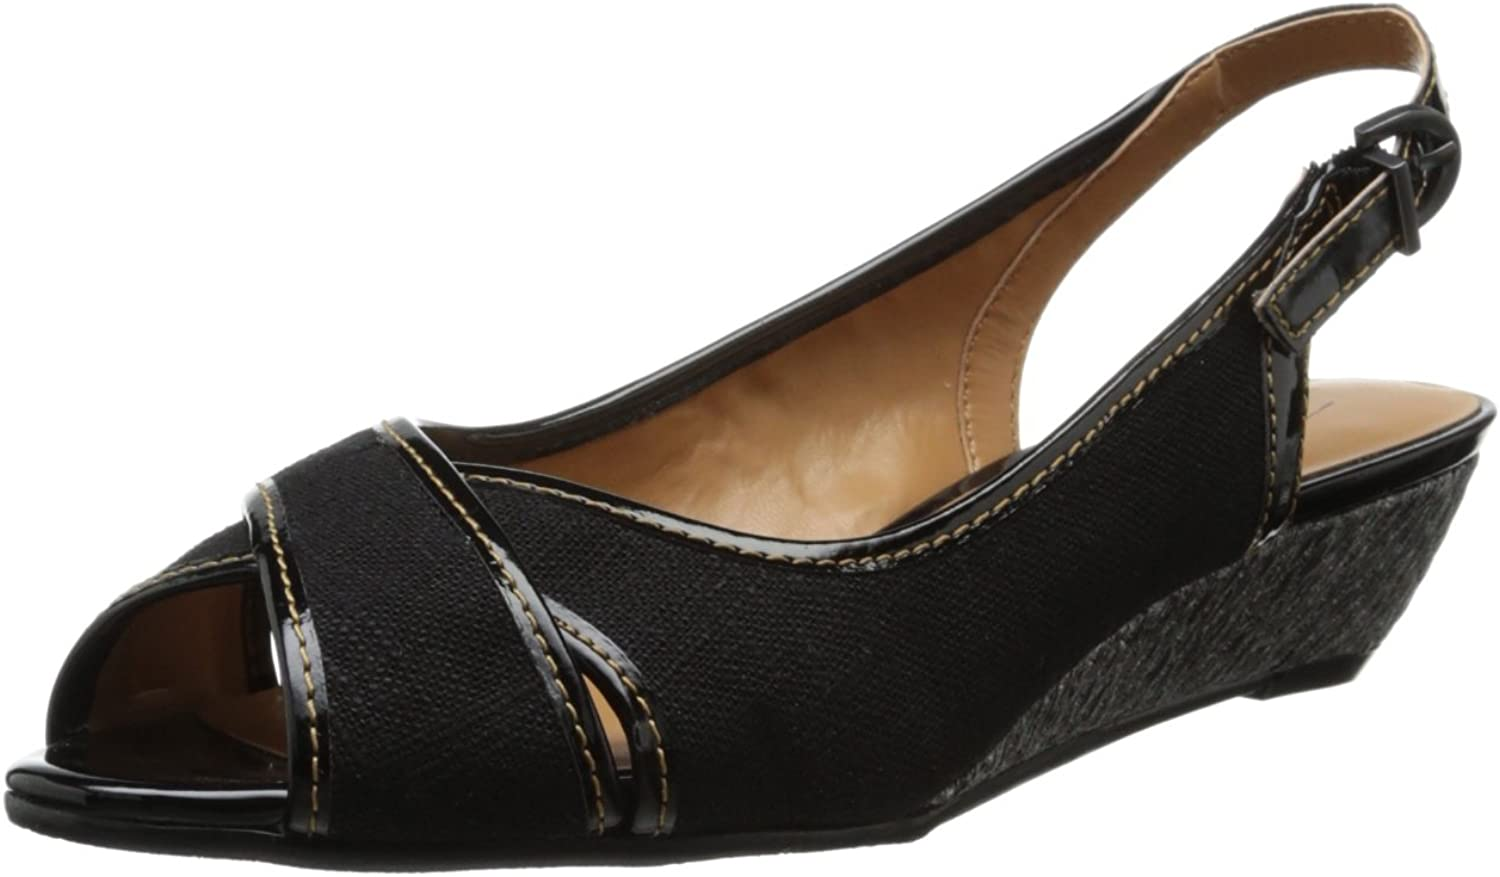 Tredters Women's Calle Wedge Pump